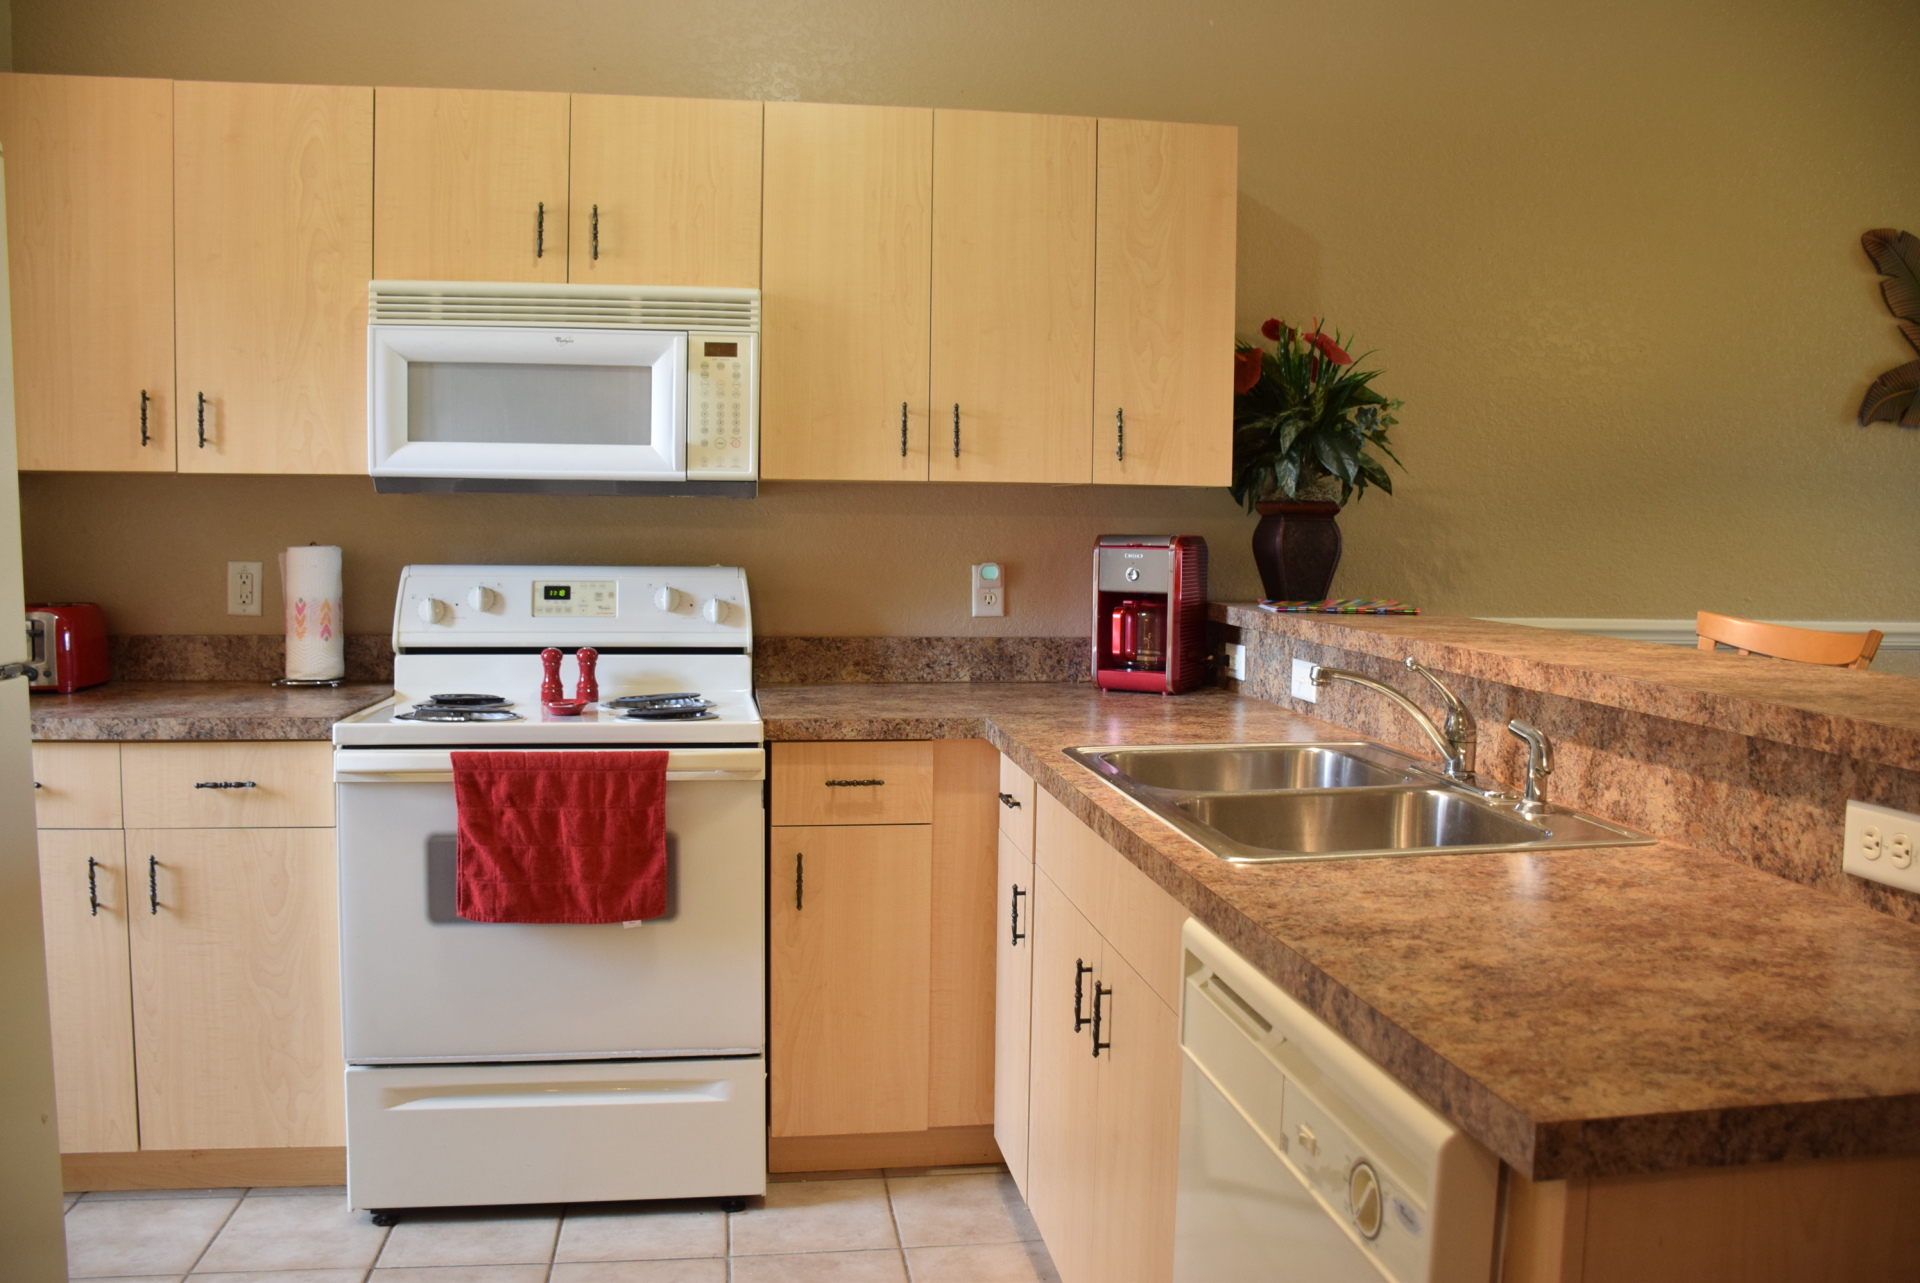 Kitchen with all new cooking ware